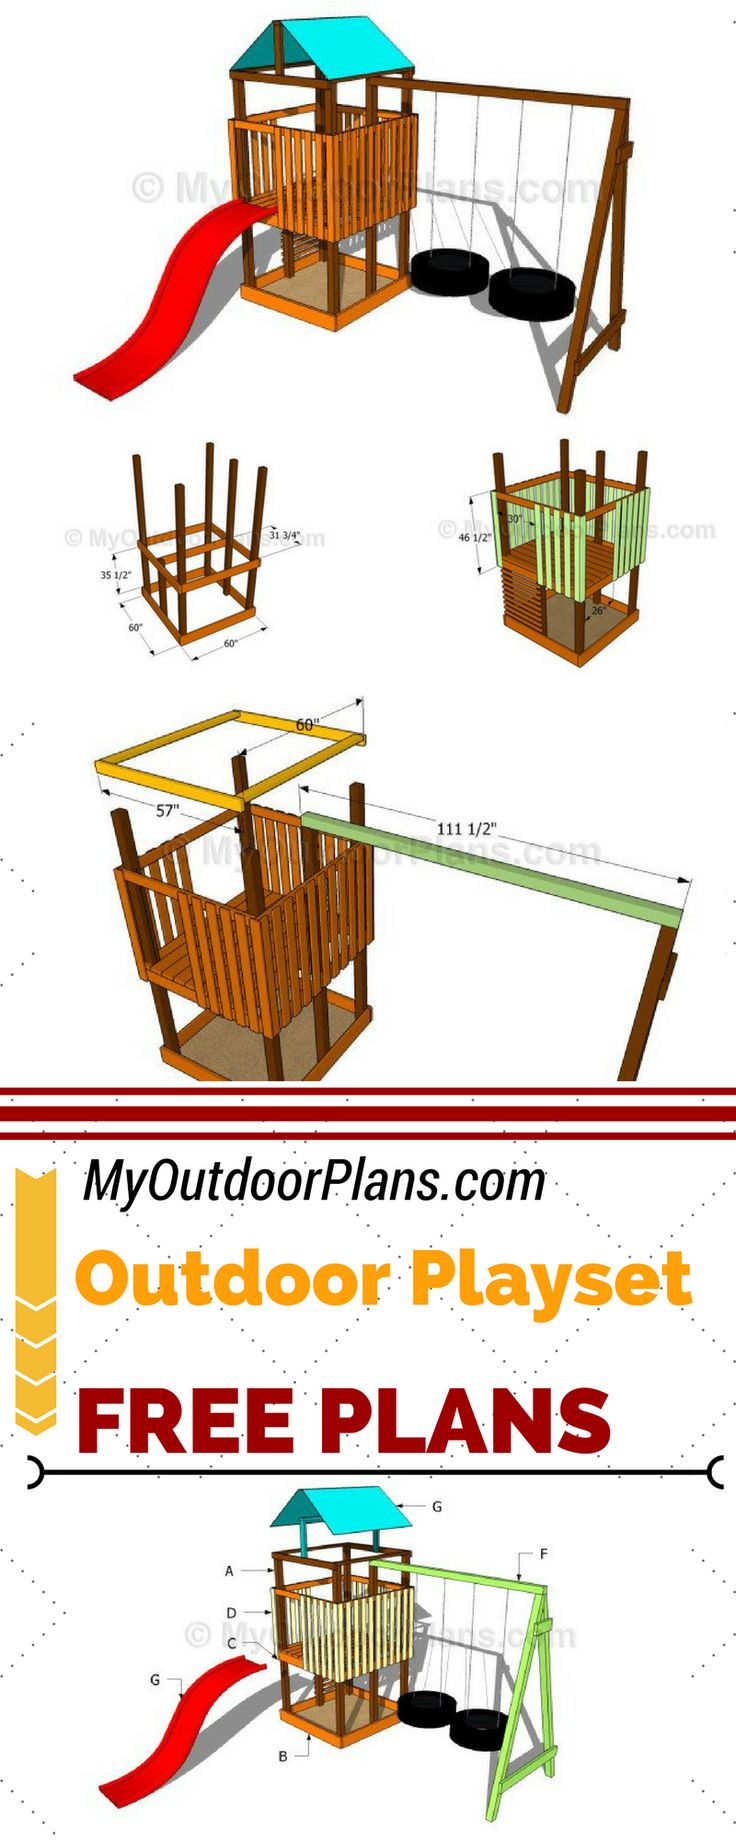 learn how to build an outdoor playset so you can keep your. Black Bedroom Furniture Sets. Home Design Ideas